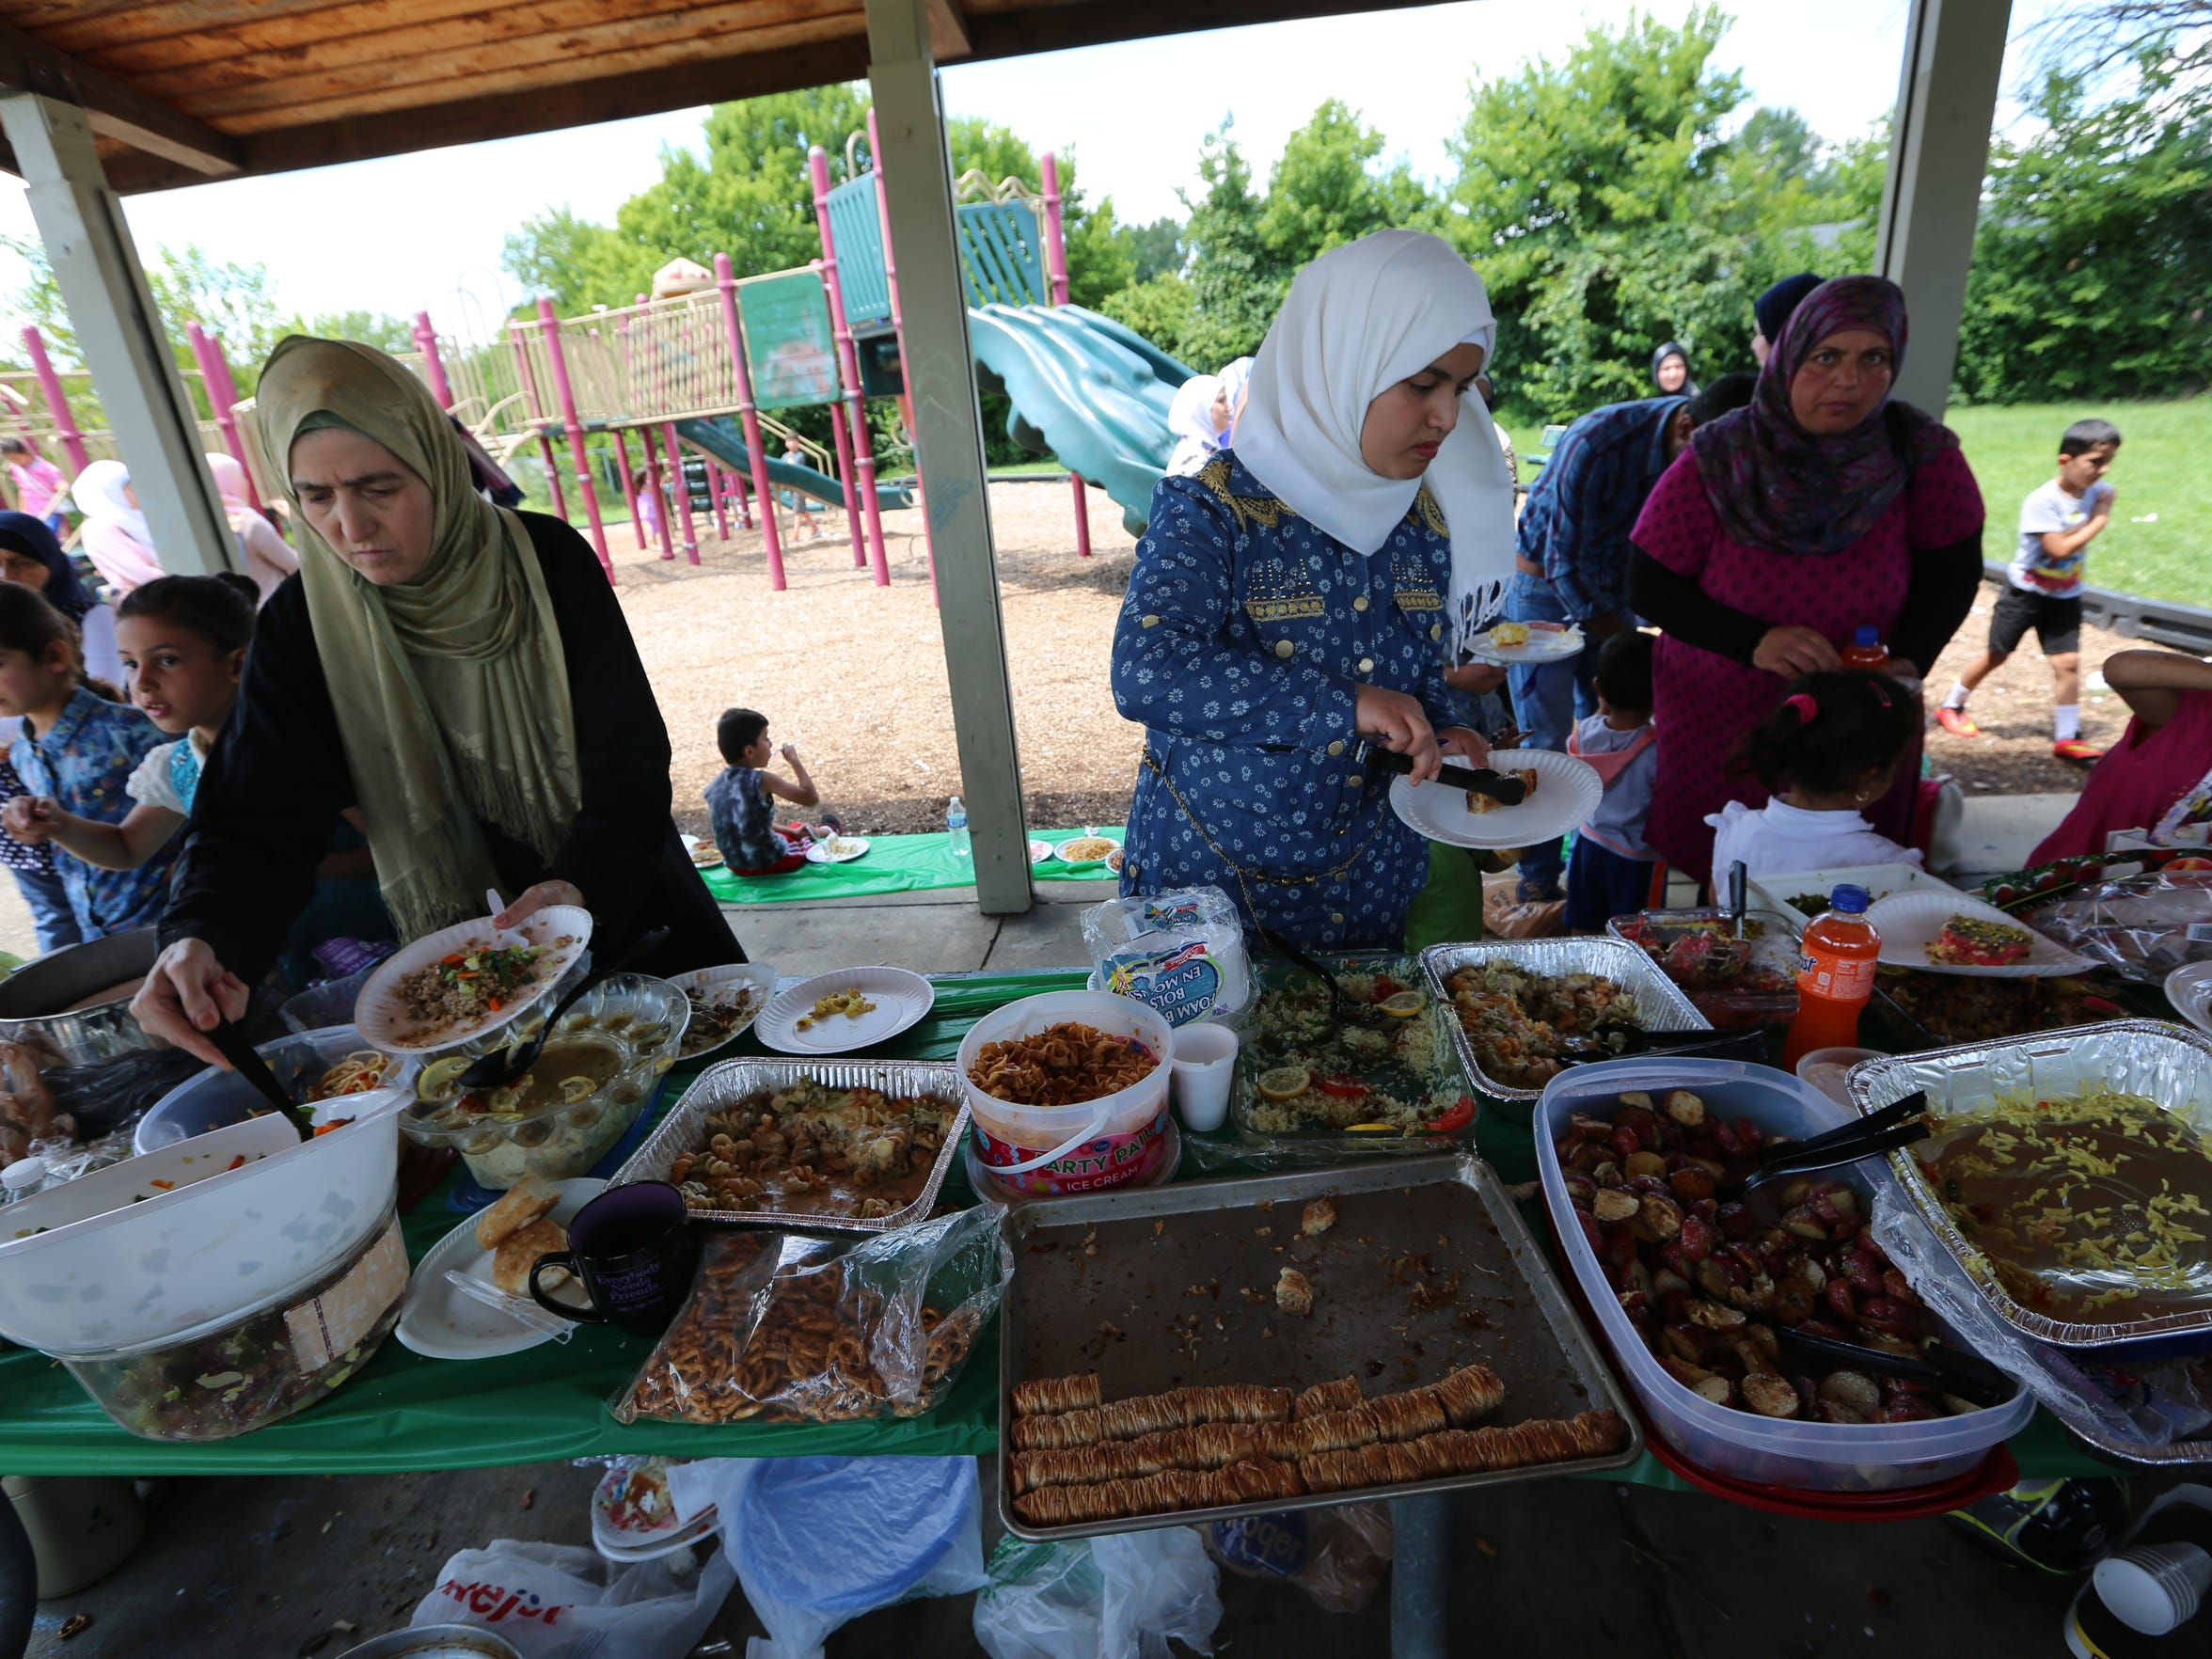 Syrians gather in a Buechel park for a picnic